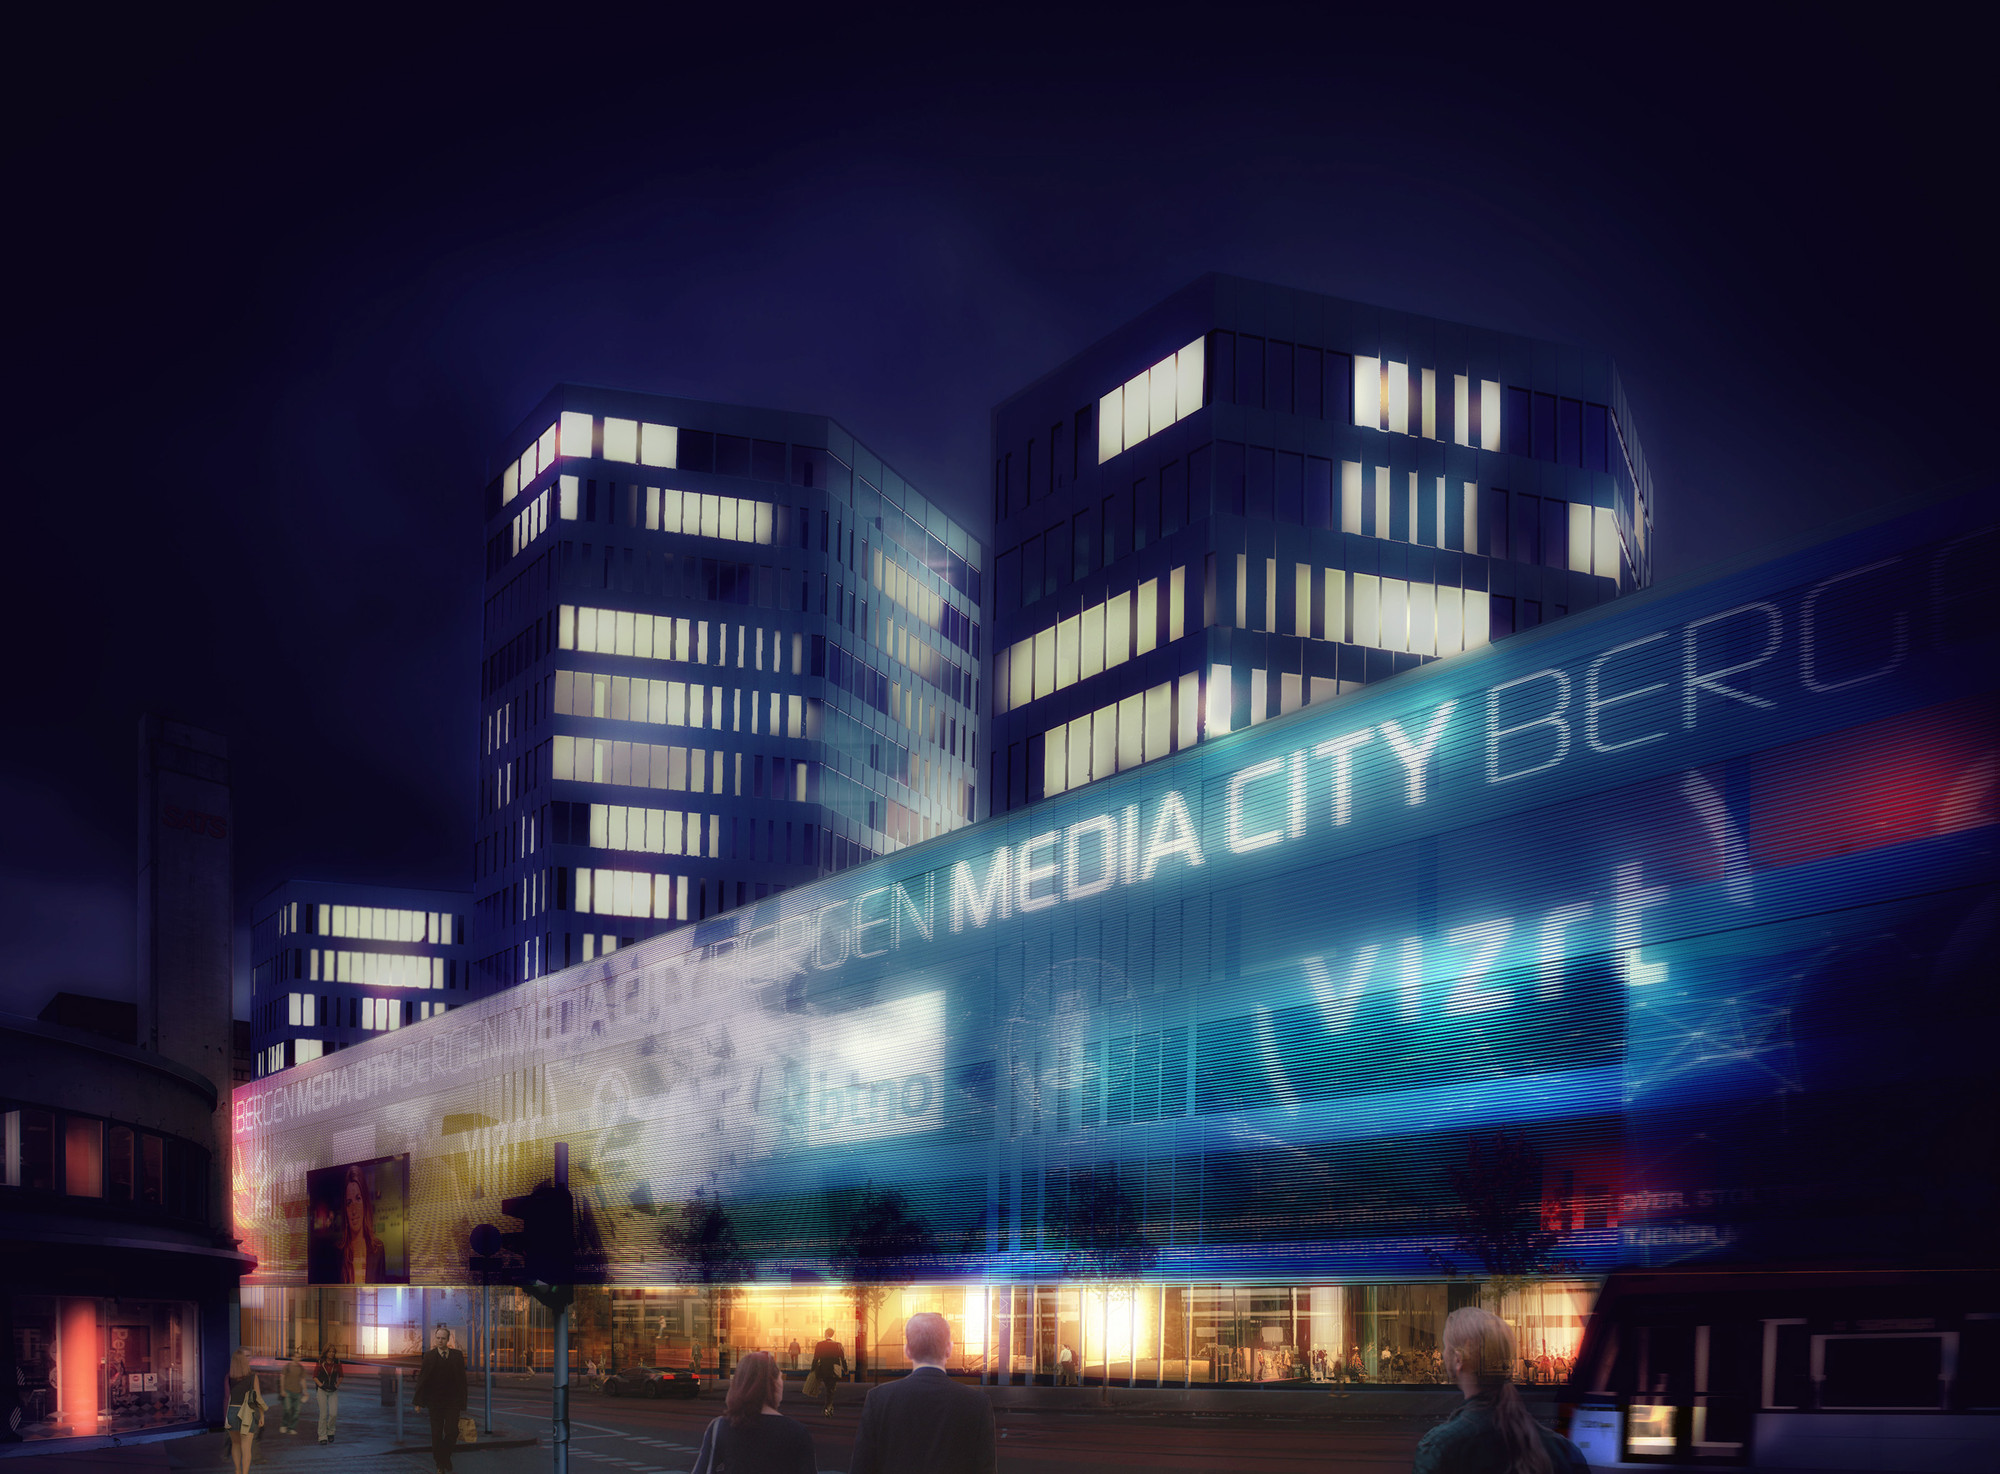 Media City Bergen (MCB) Winning Proposal / MAD arkitekter ArchDaily